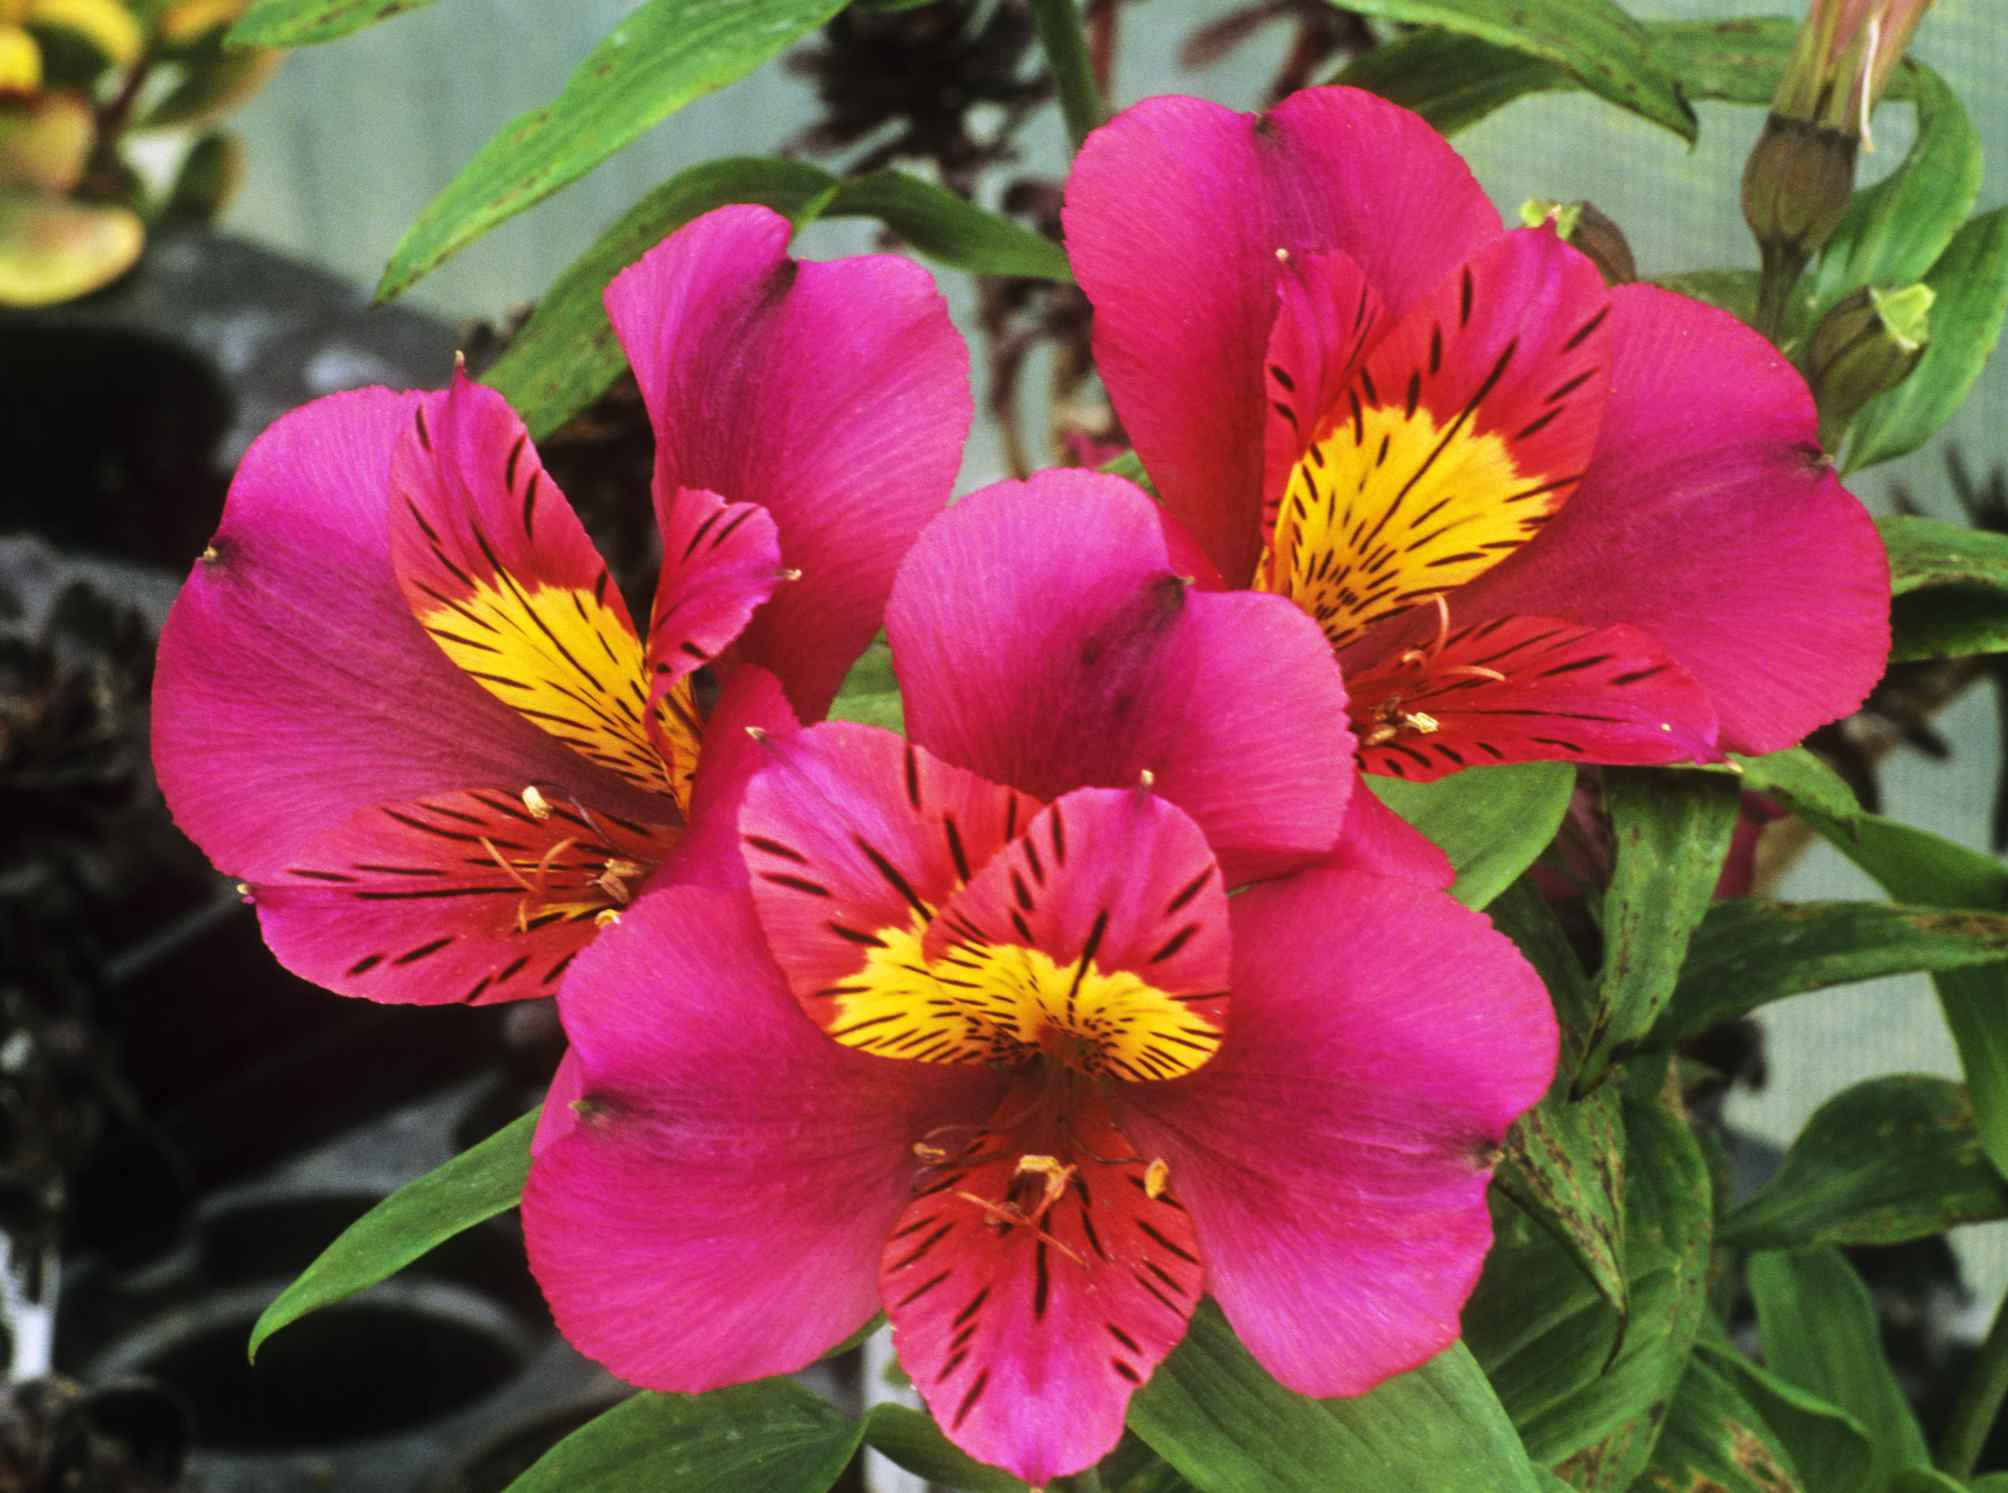 How To Grow And Care For Peruvian Lilies